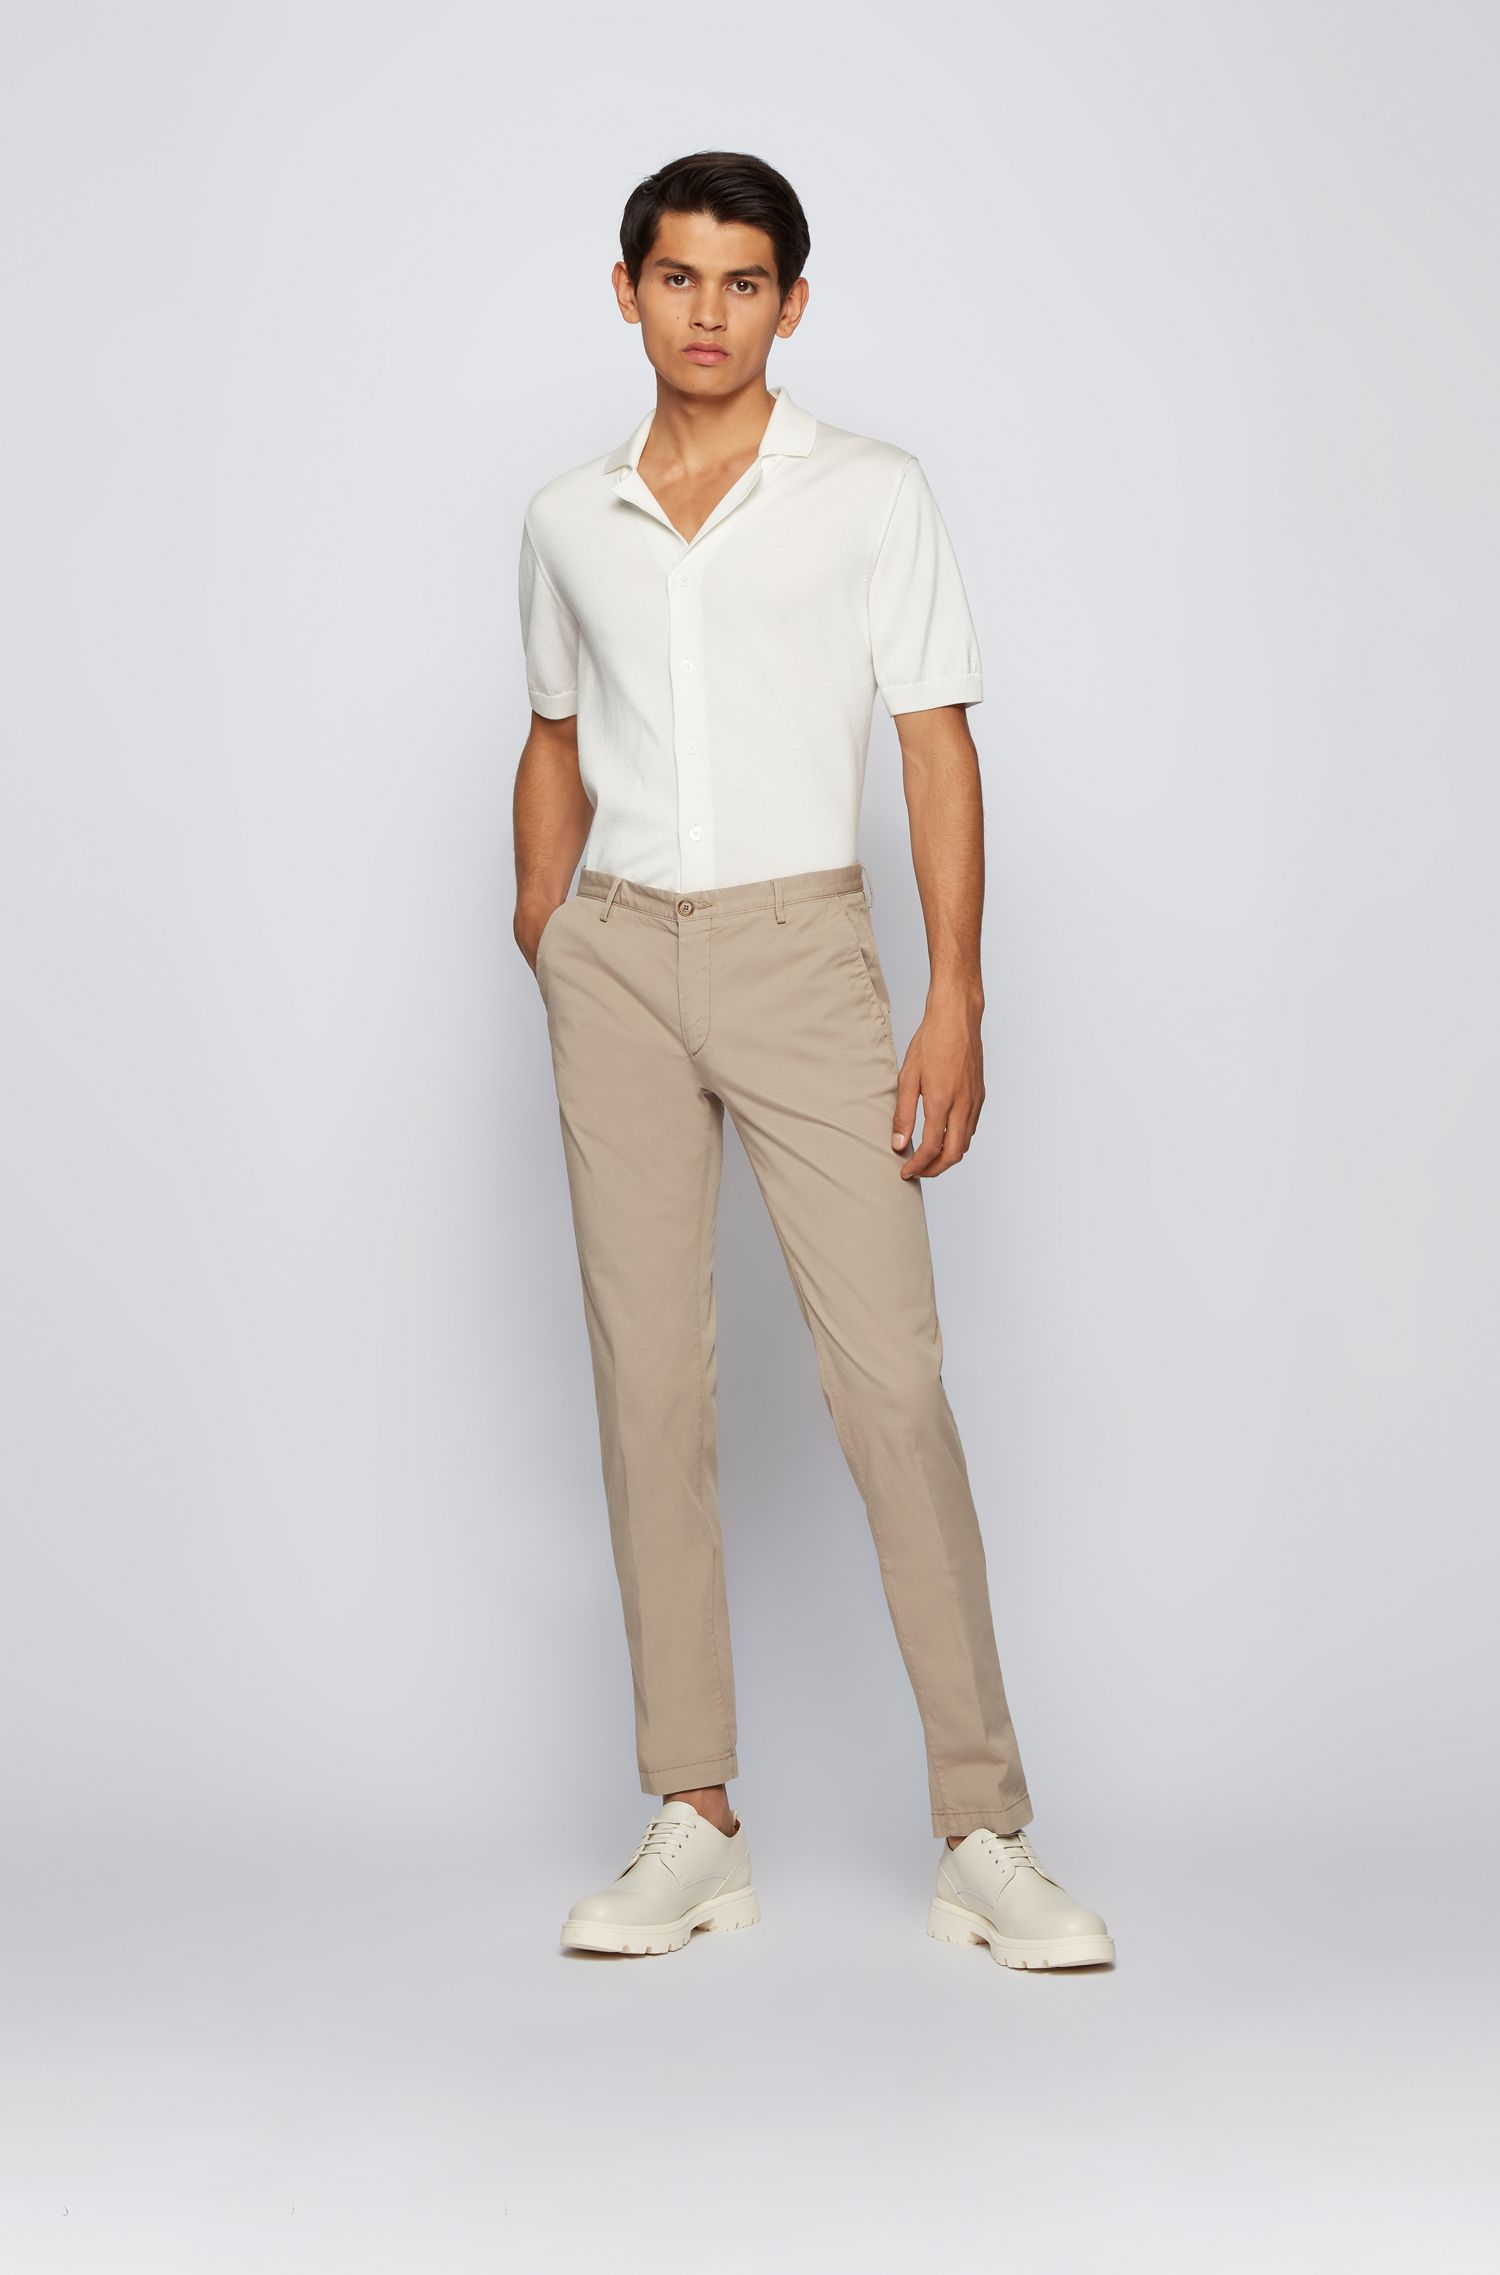 Cotton Stretch Chino Pant, Slim Fit   Rice D, Open Beige